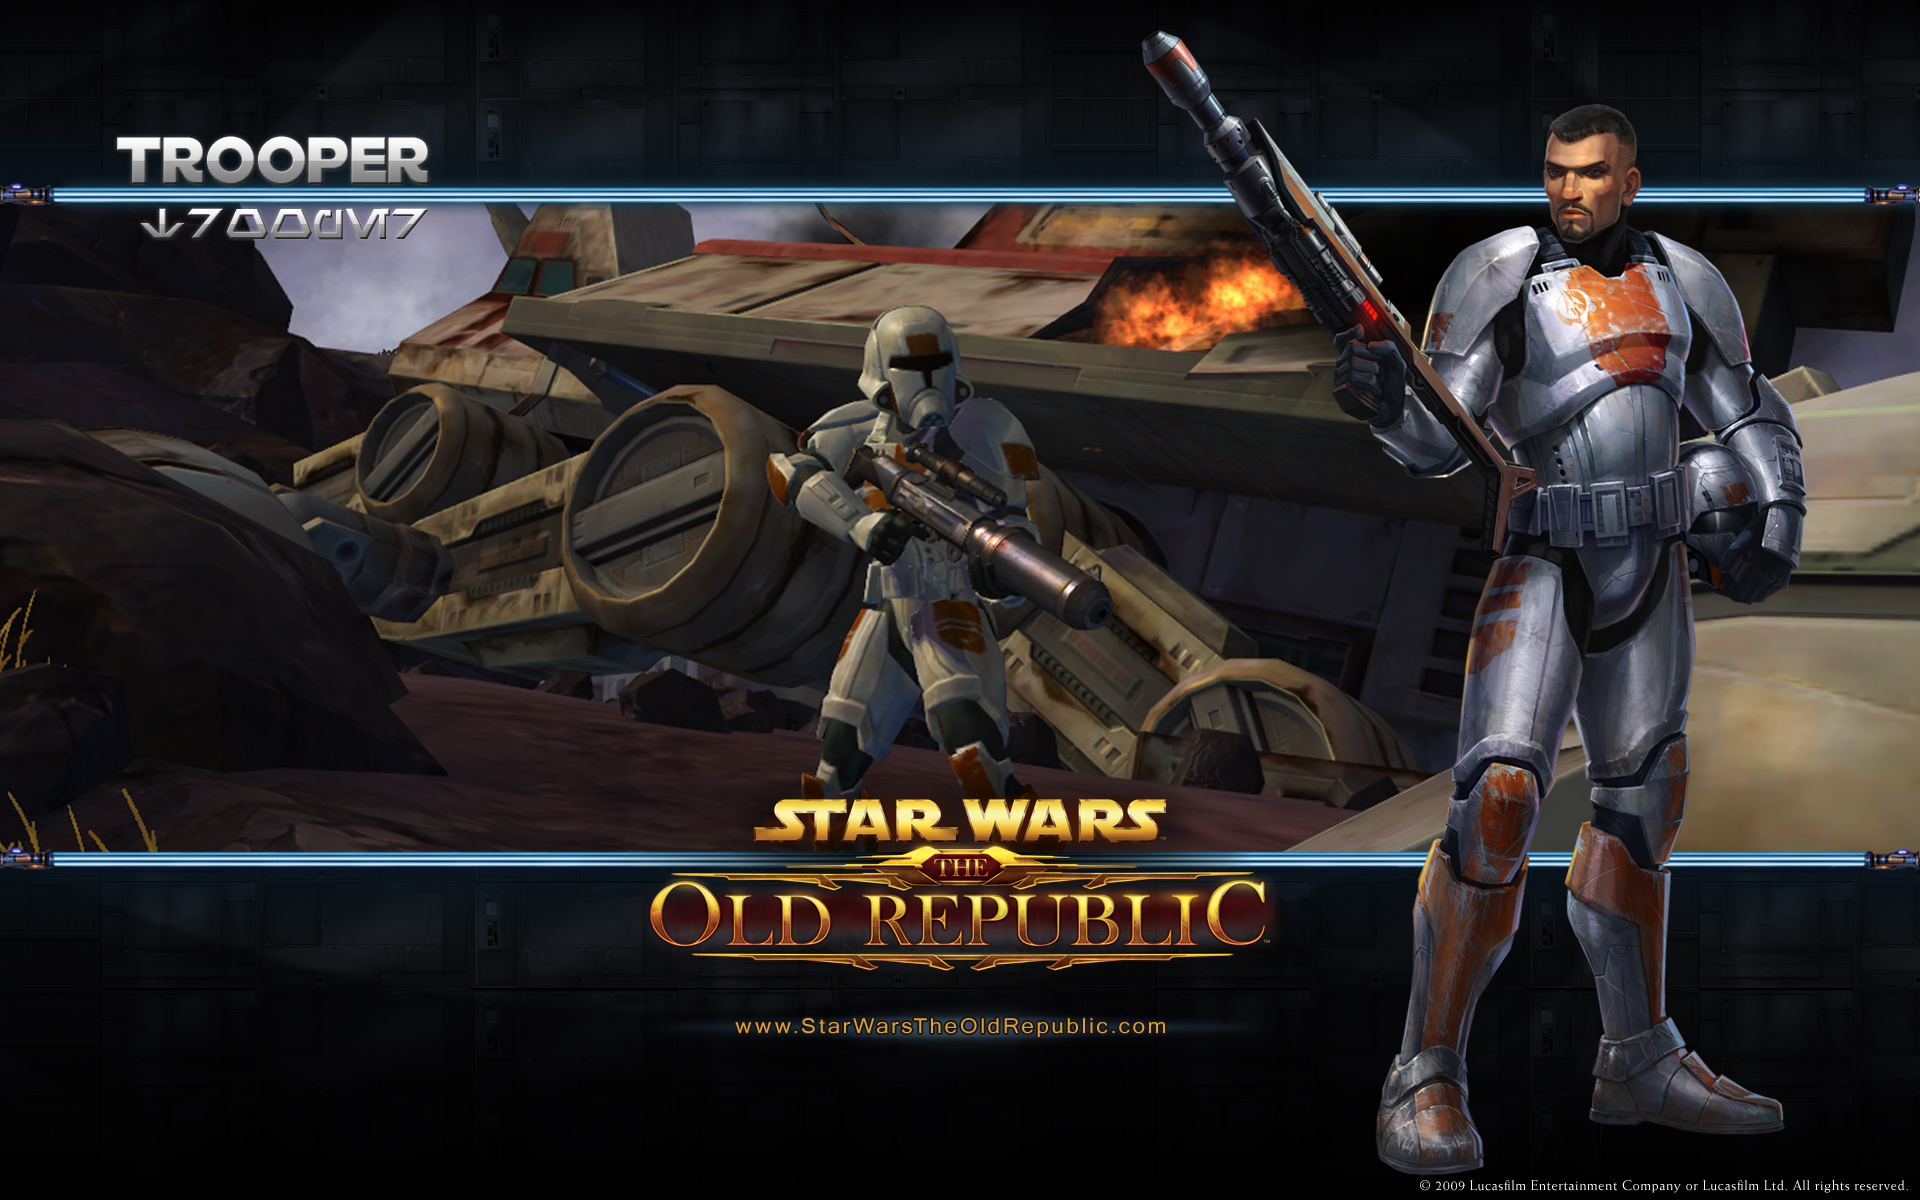 Star Wars The Old Republic Wallpapers, Pictures, Images